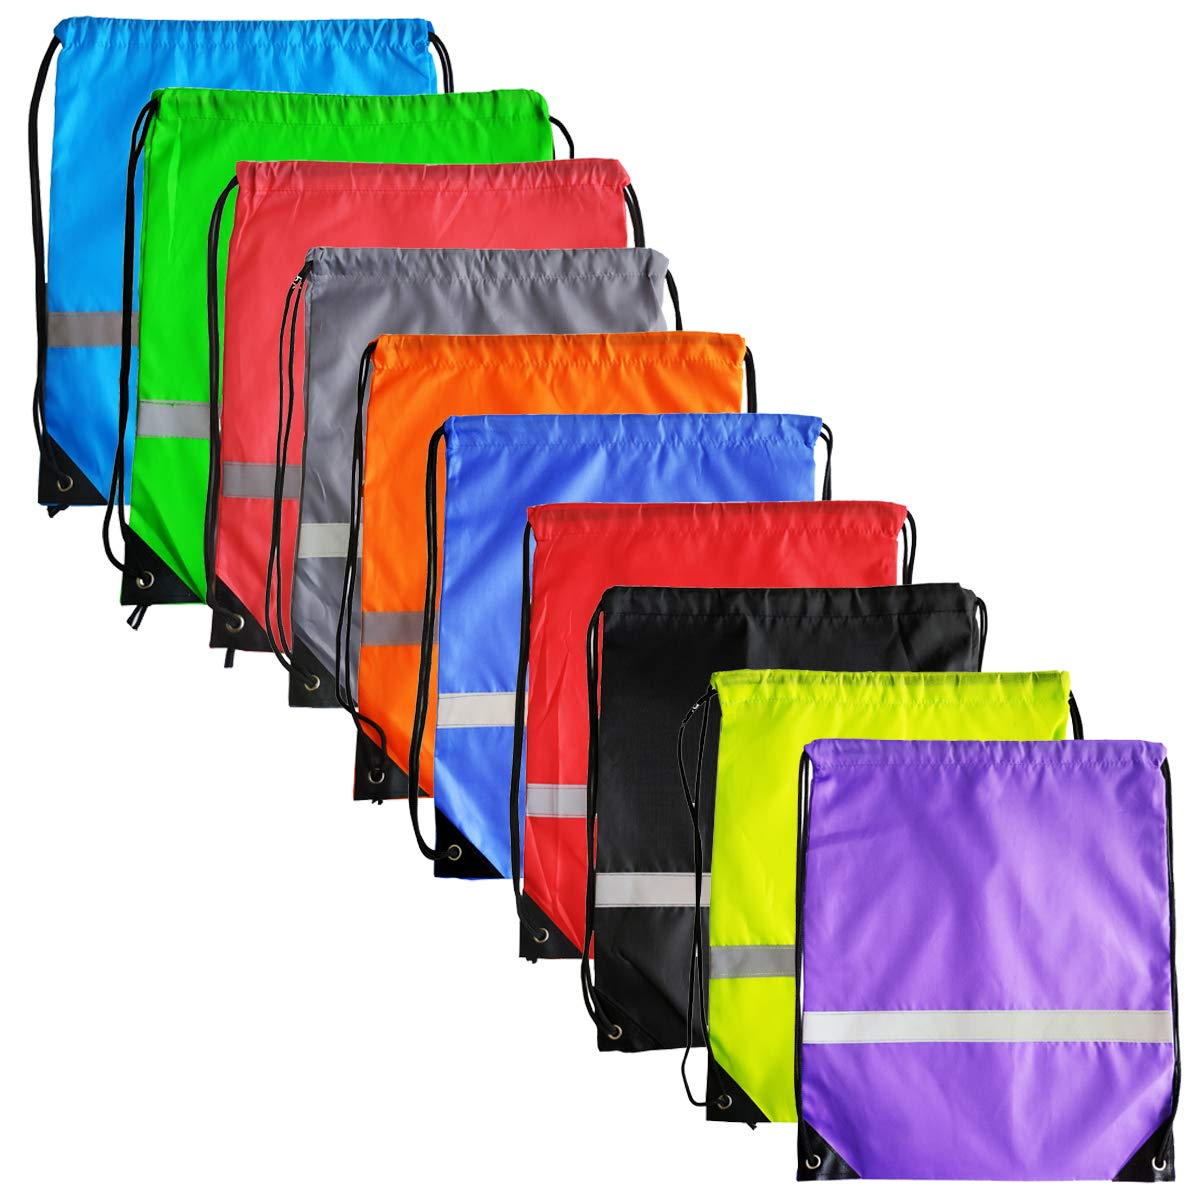 10 Colors Reflective Strip Drawstring Backpack Bags Sack Pack Cinch Tote Kids Adults Storage Fabric Polyester Bag for Sport Gym Traveling